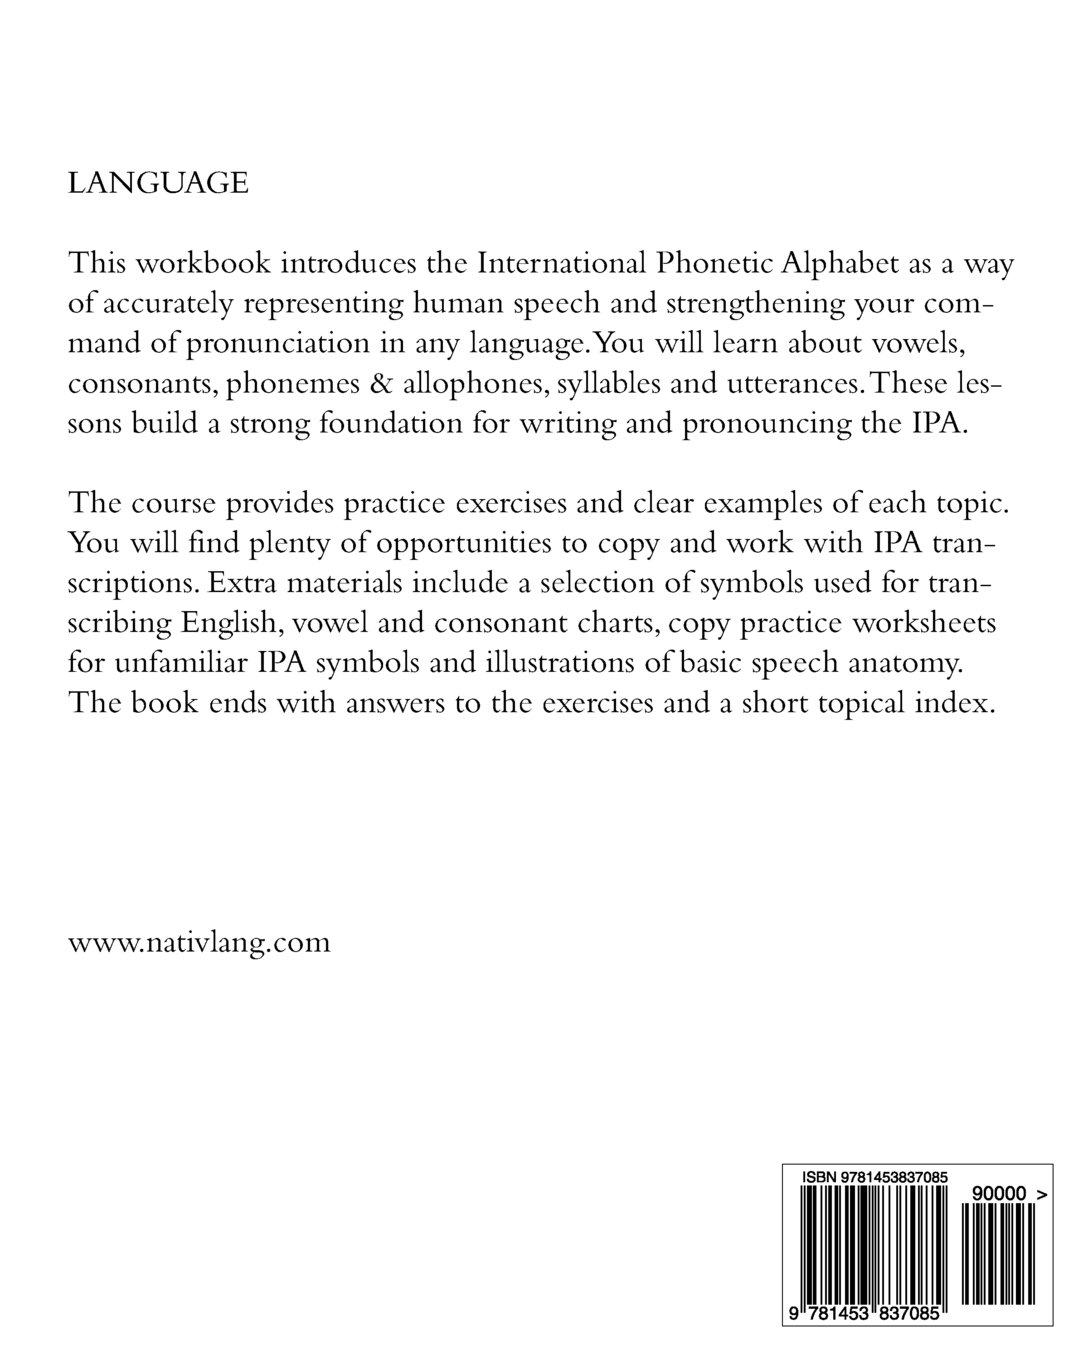 The ipa for language learning an introduction to the the ipa for language learning an introduction to the international phonetic alphabet joshua rudder 9781453837085 books amazon biocorpaavc